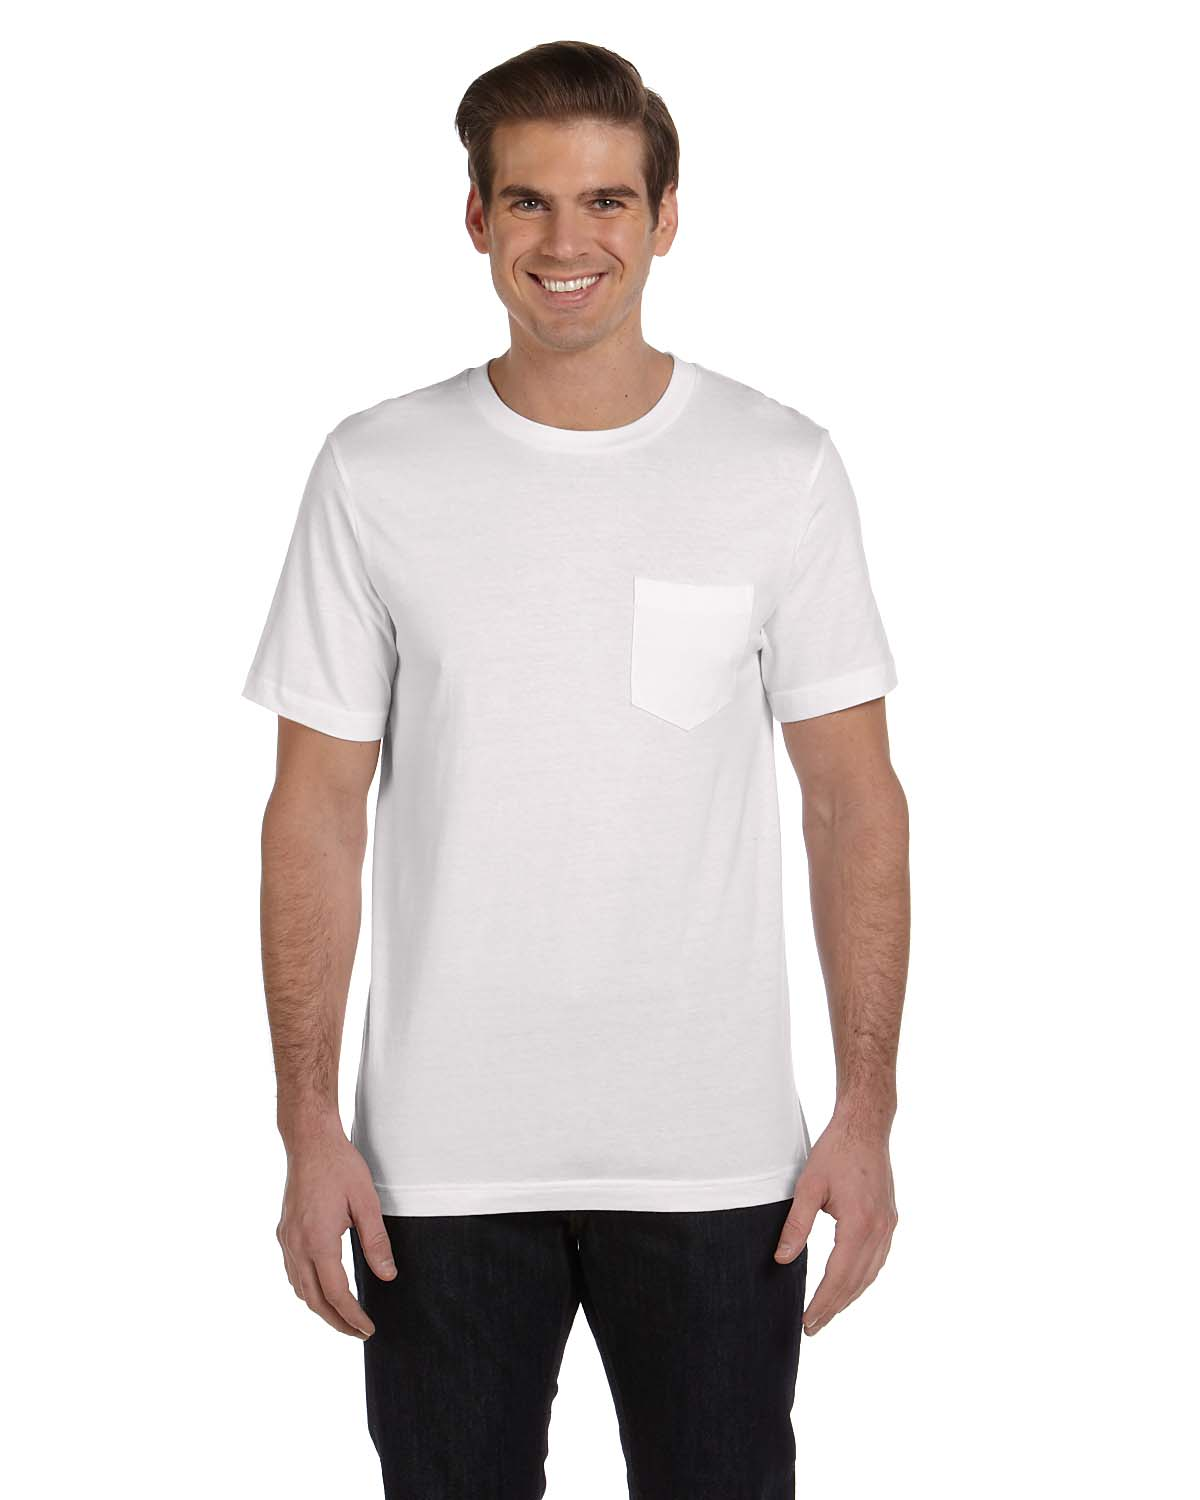 Pocket T-shirts. Showing 40 of results that match your query. Search Product Result. F*ck Olly GoT Nights Watch Mens T-shirt. Product Image. Price $ Product Title. F*ck Olly GoT Nights Watch Mens T-shirt. a ShippingPass subscription gets you the things you need without hurting your pocket.